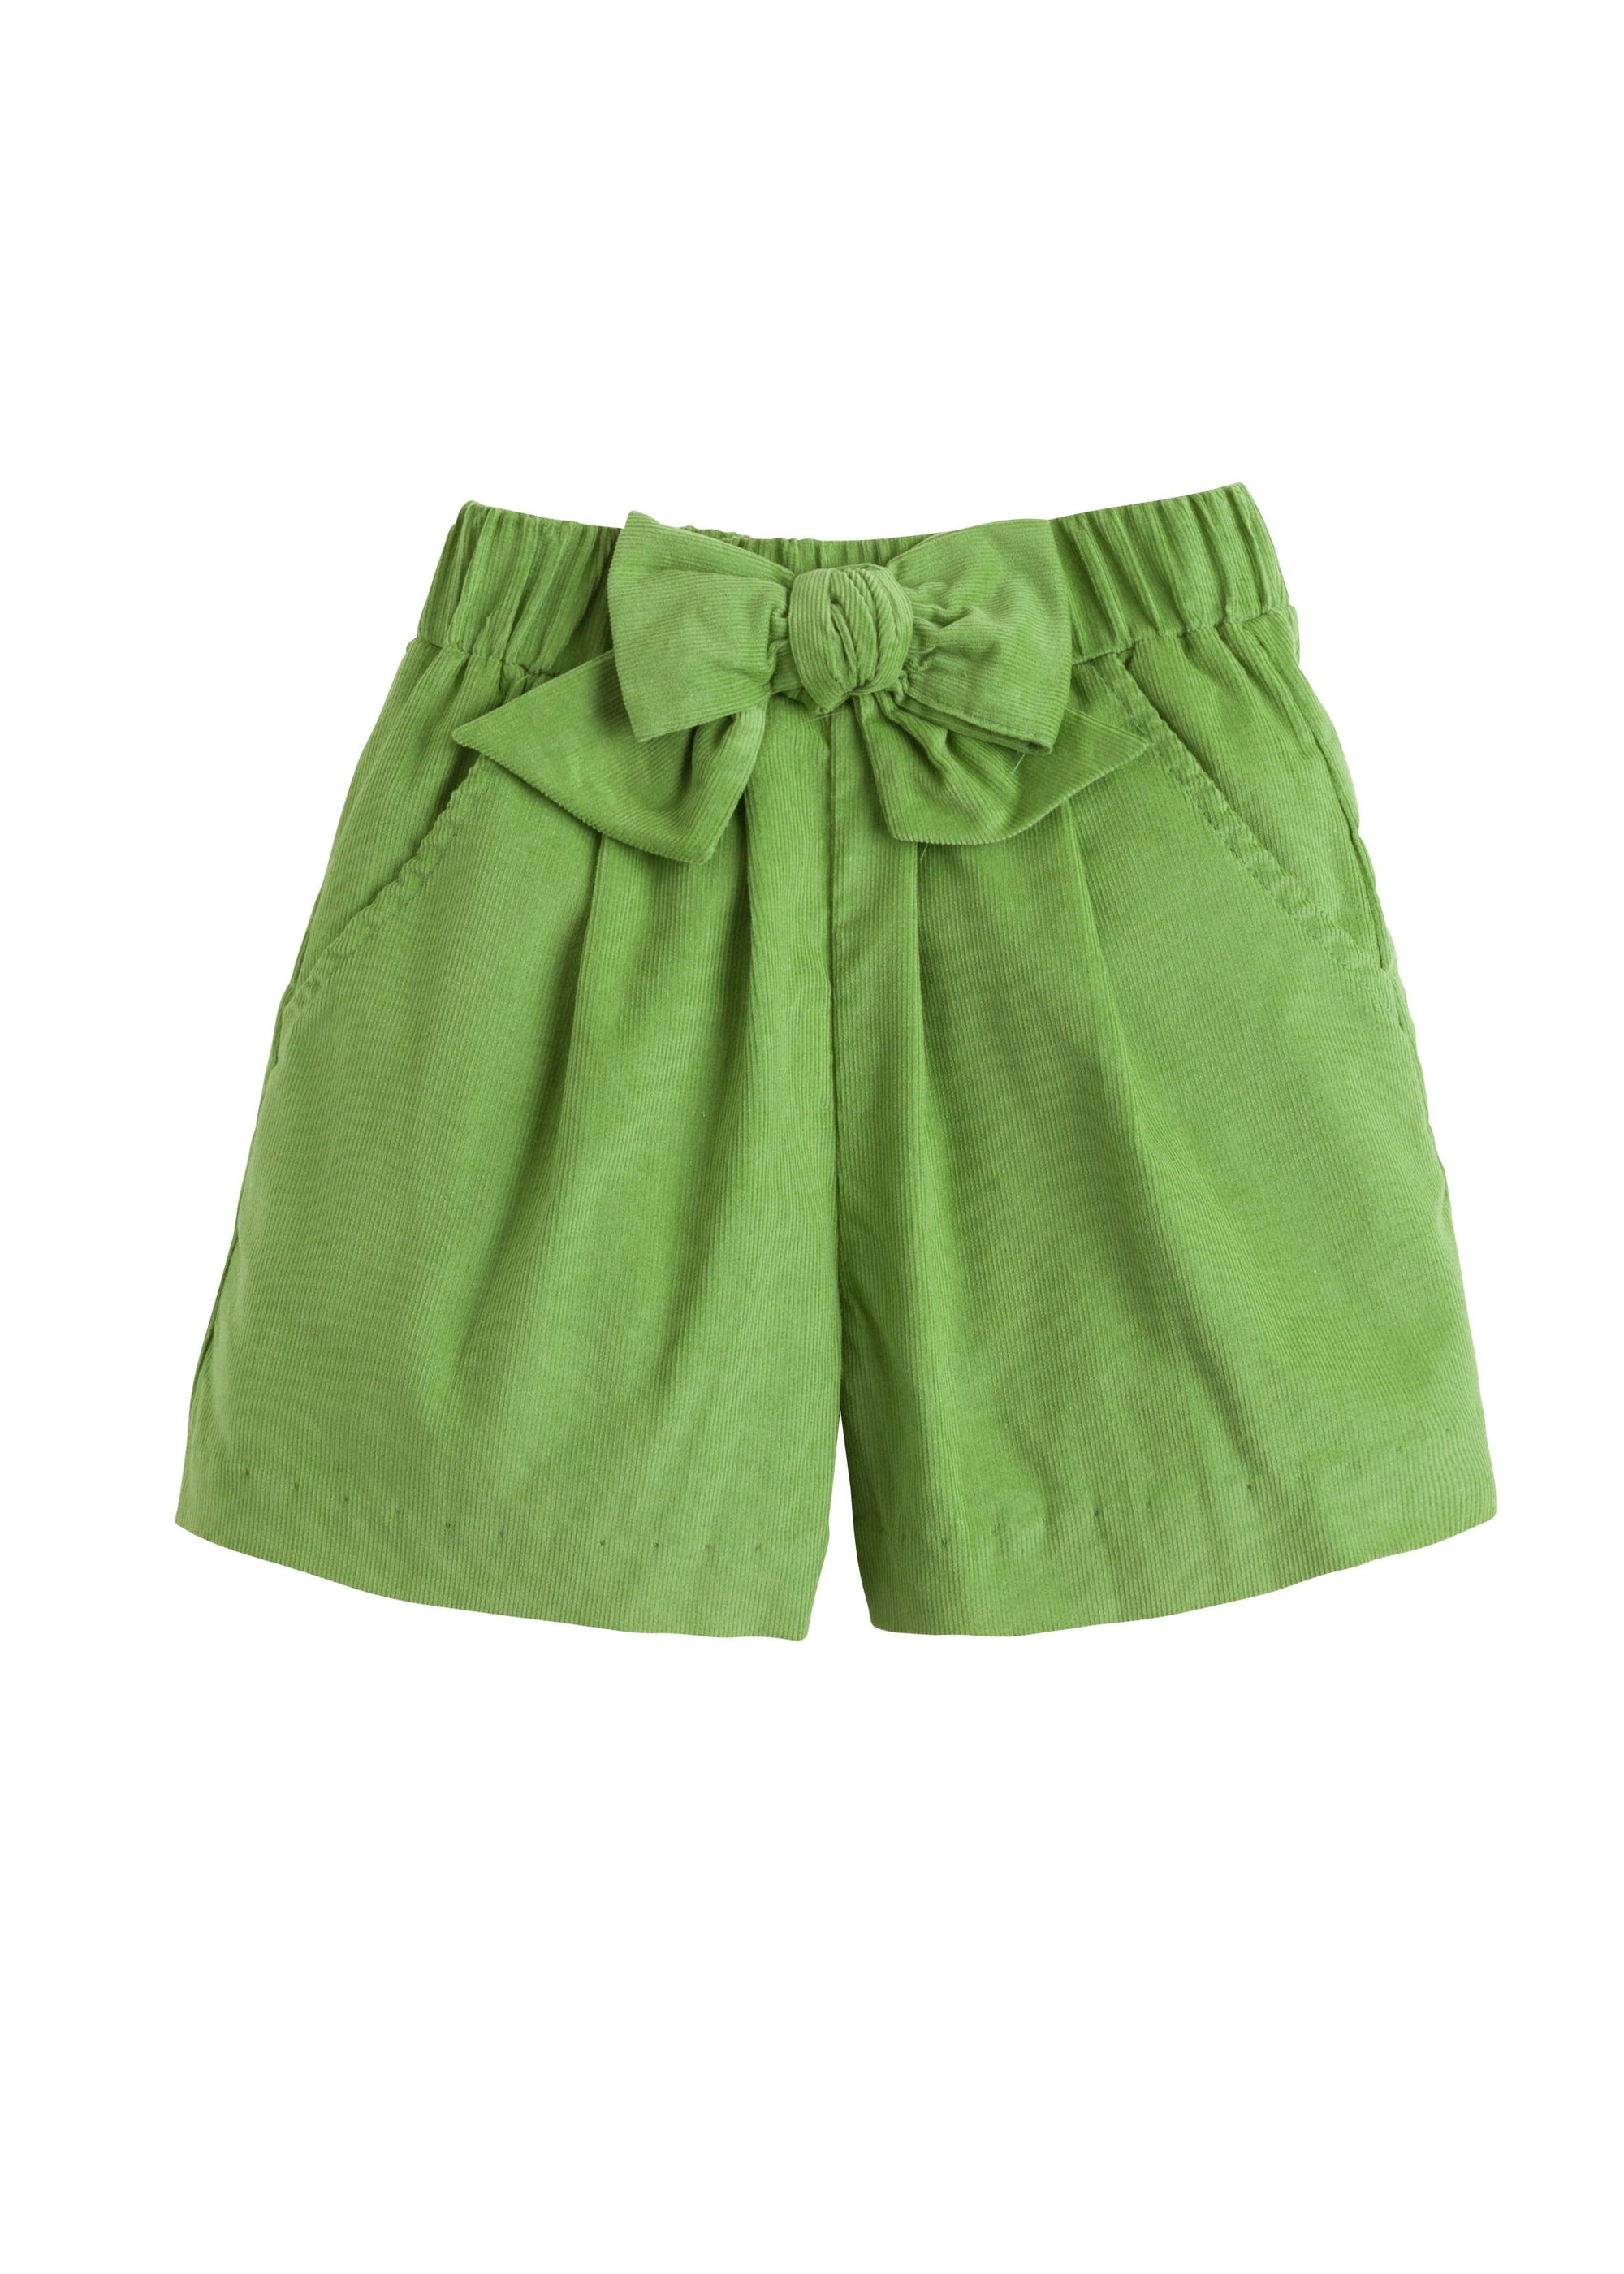 Corduroy Bow Shorts - Sage Green, Little English, classic children's clothing, preppy children's clothing, traditional children's clothing, classic baby clothing, traditional baby clothing